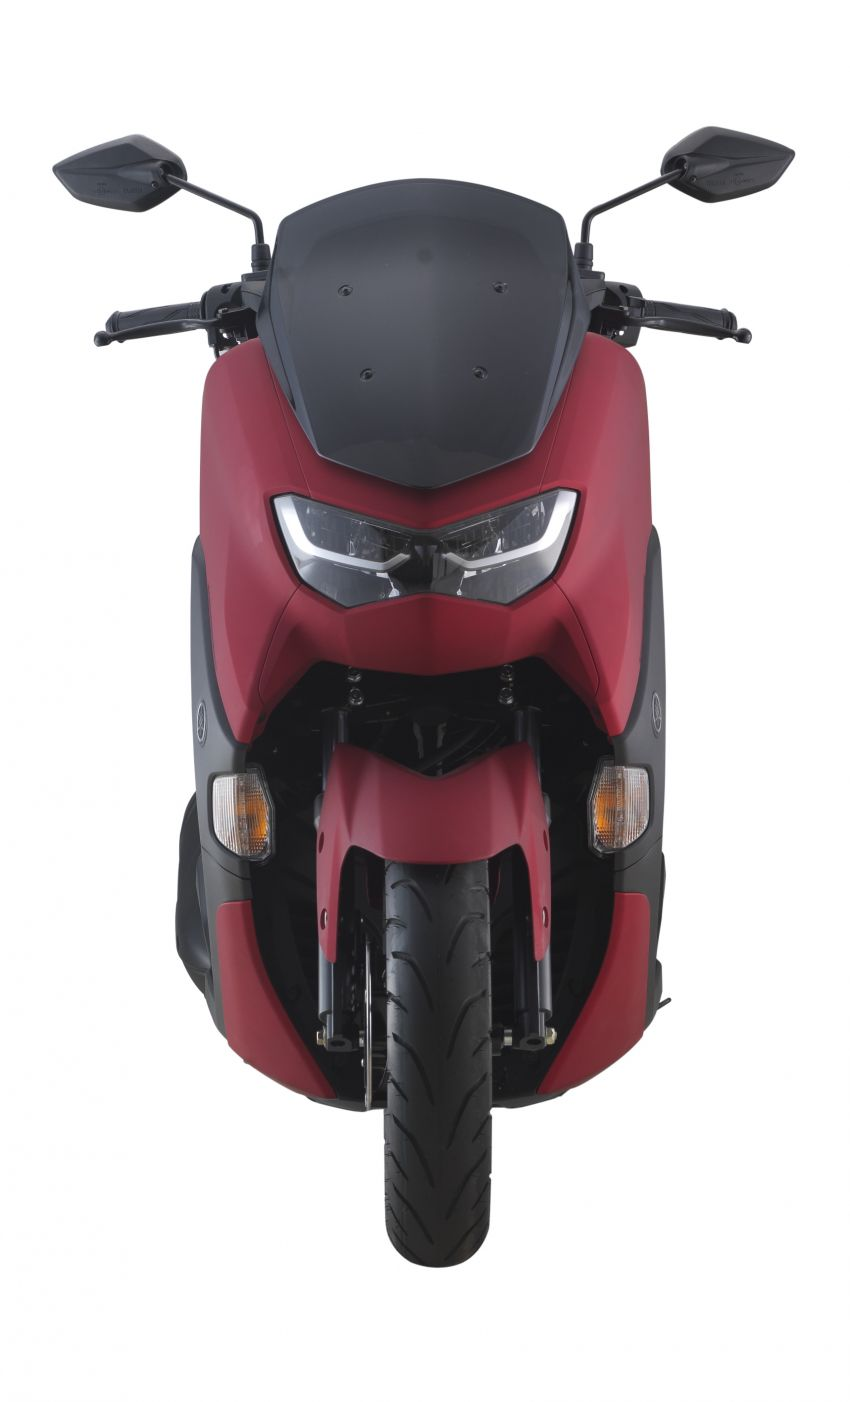 2021 Yamaha NMax 155 scooter in Malaysia, RM8,998 Image #1219083